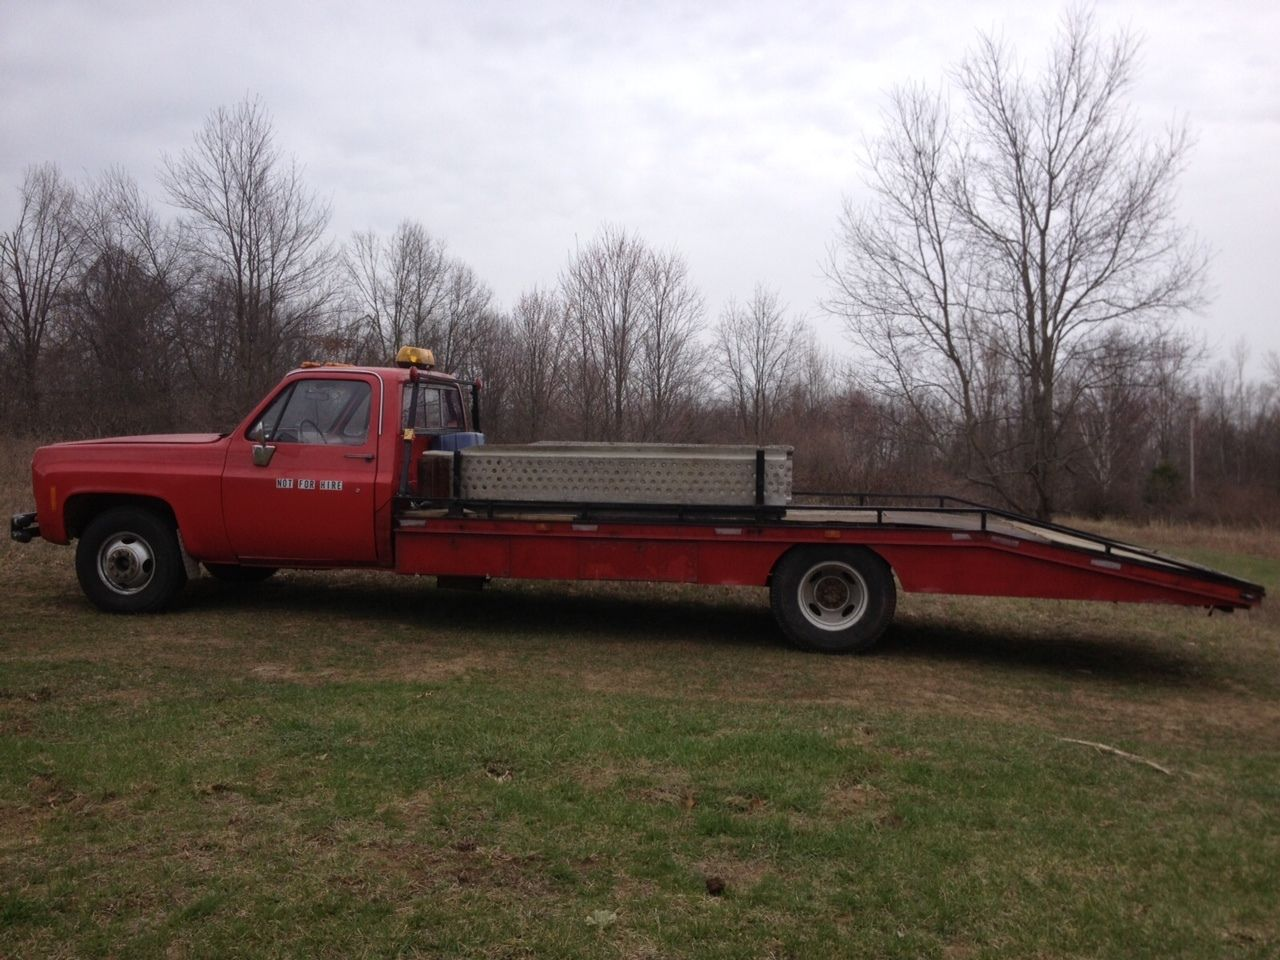 1978 Chevy Vintage Car Hauler - 21 foot Bed - Ramp Truck